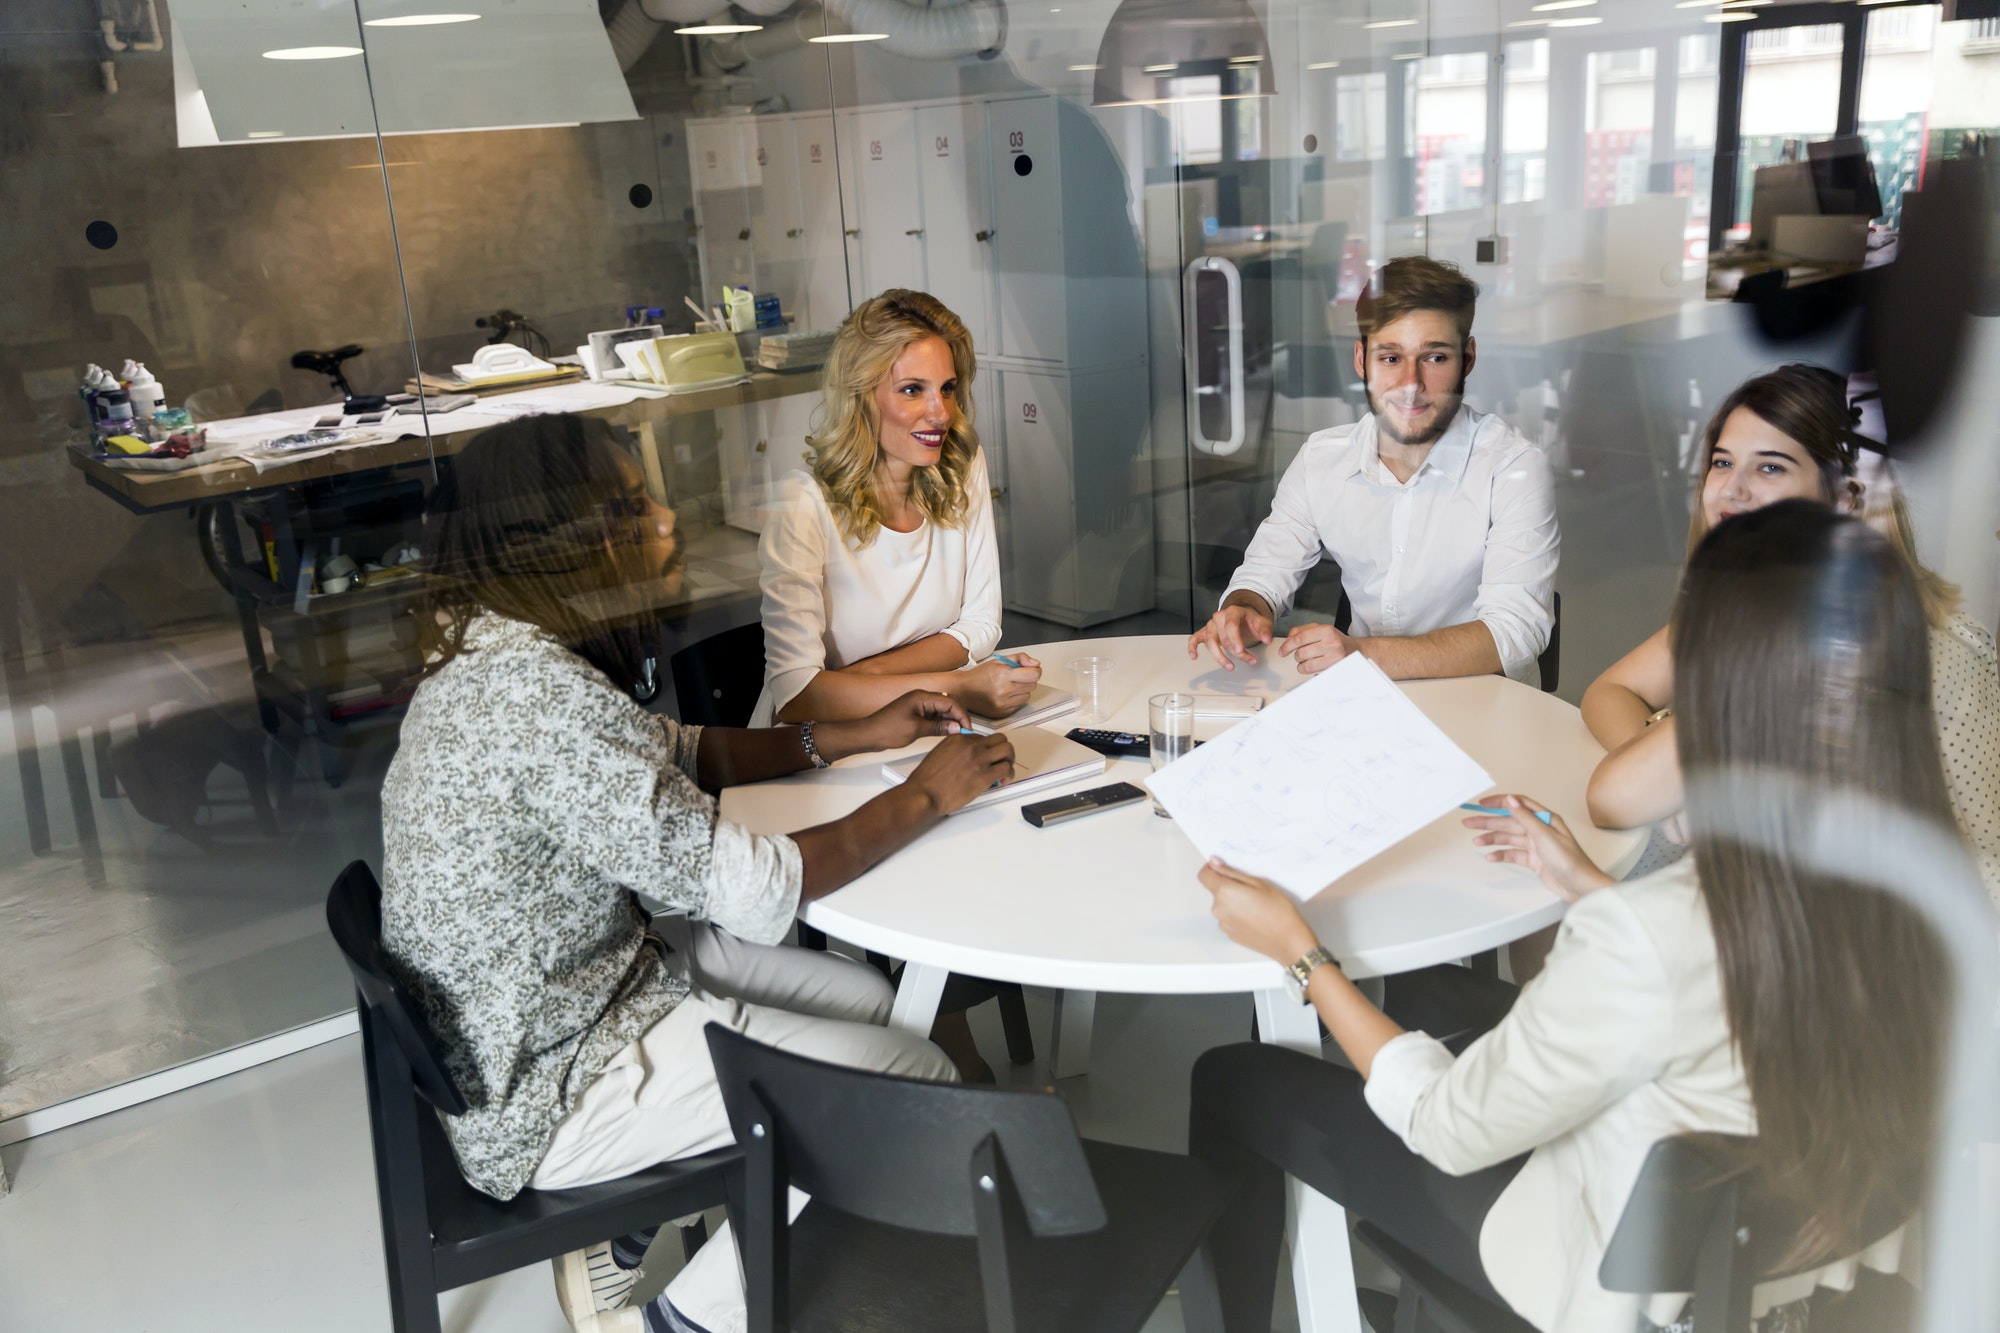 Five co workers around a table having a meeting